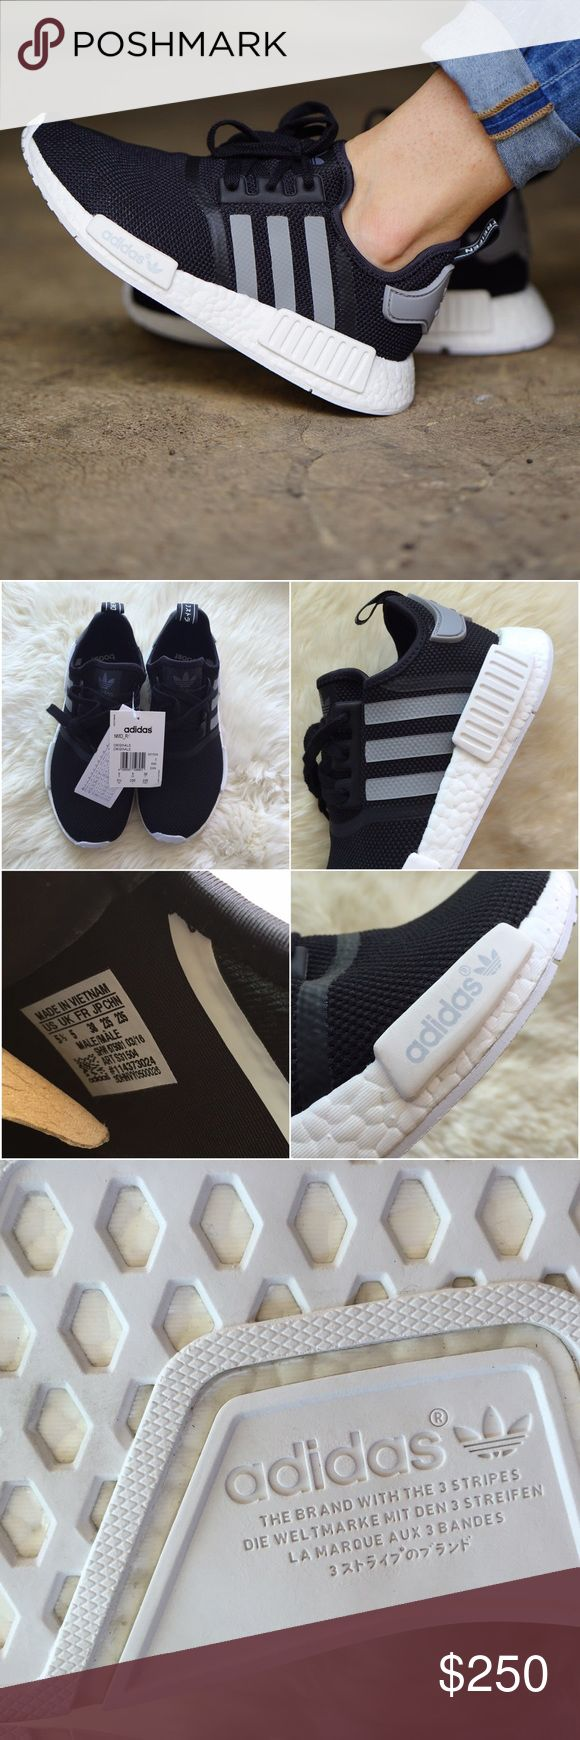 adidas nmd black  pink youth size adidas ultra boost white and black